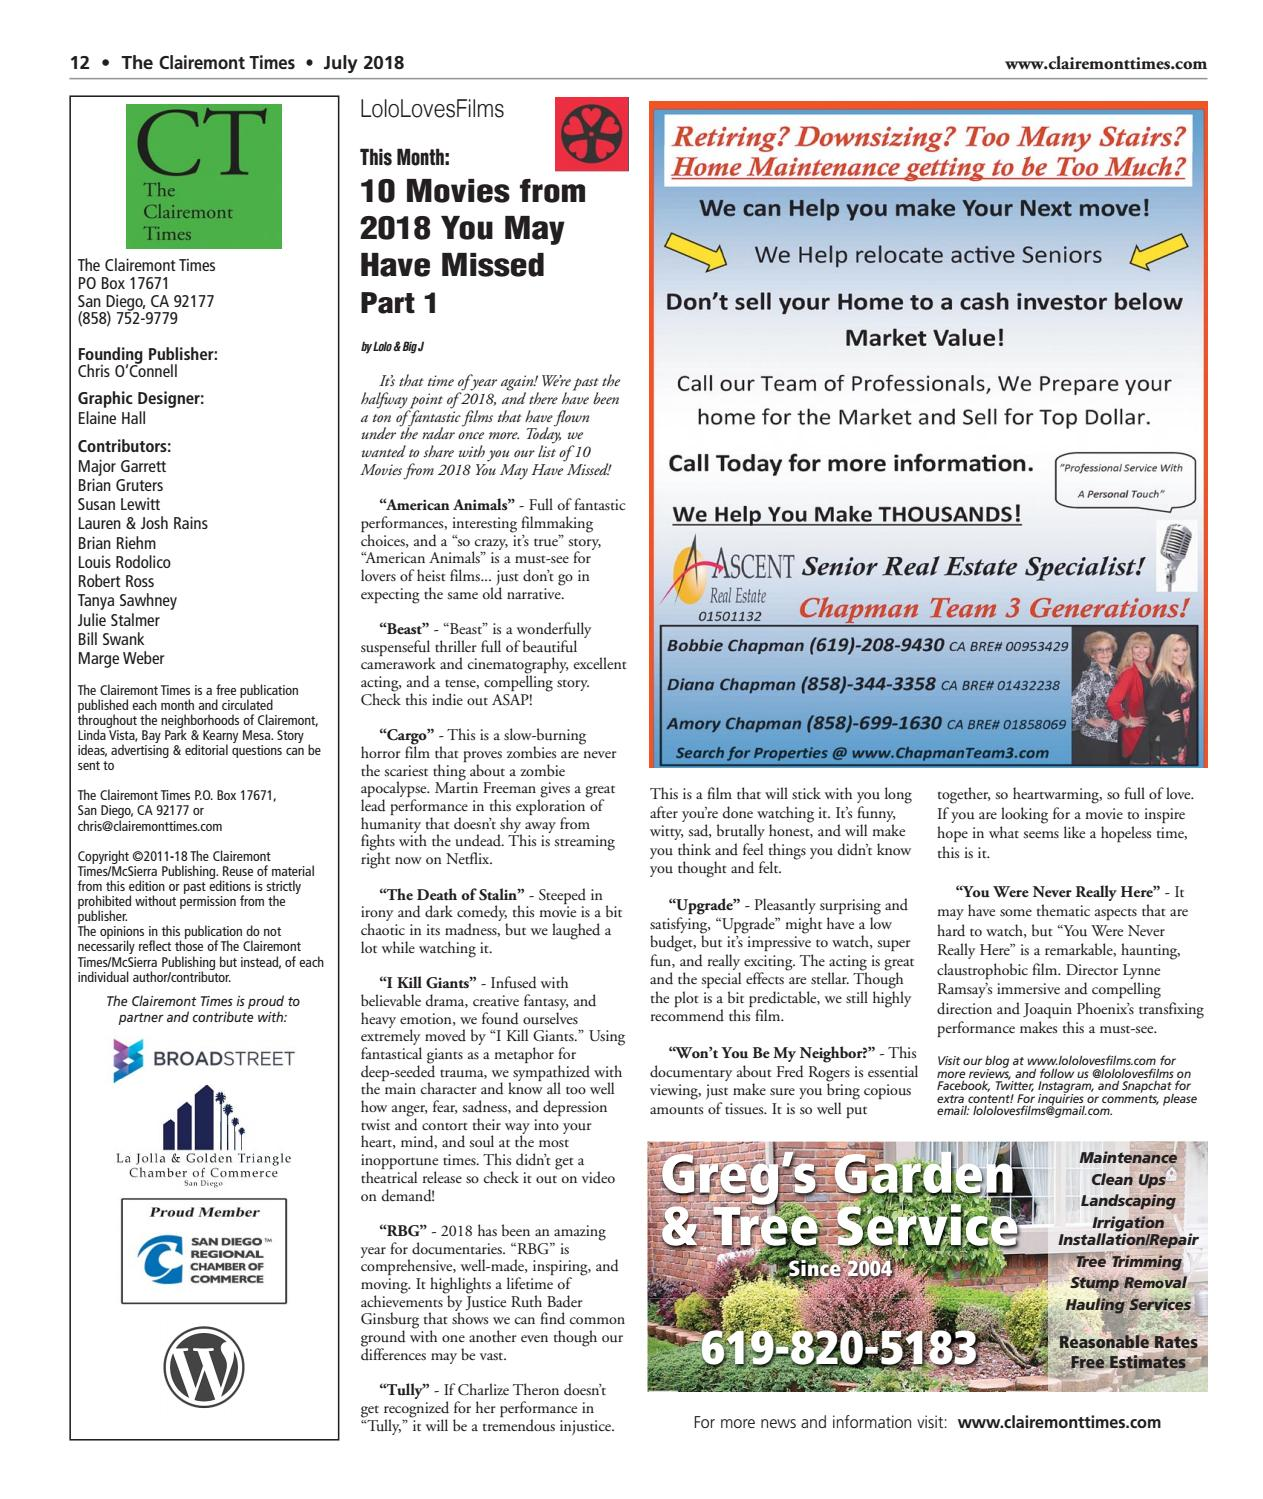 Clairemont Times July 2018 by Clairemont Times - issuu